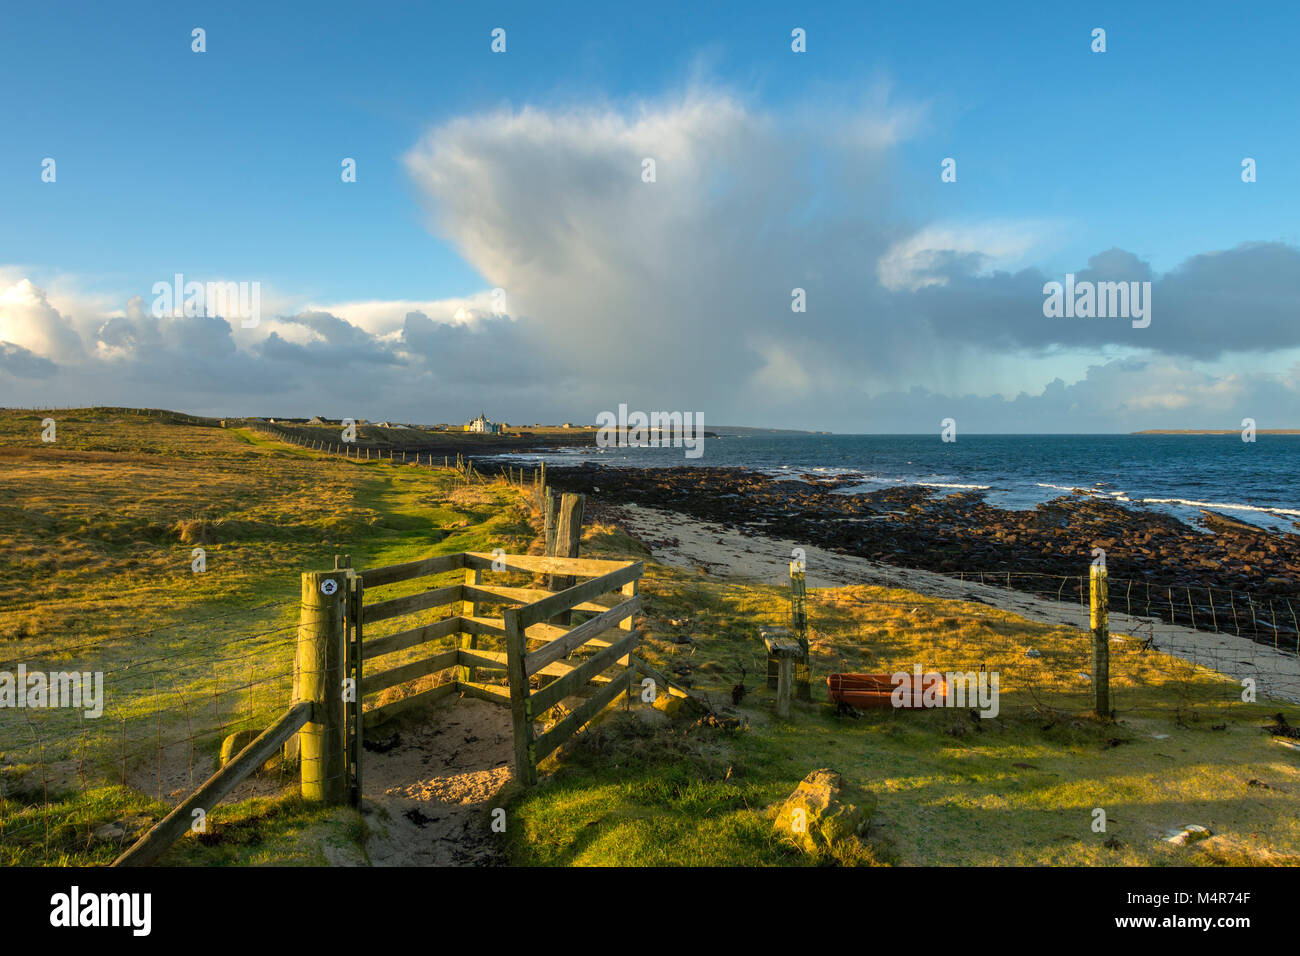 A stile on the coastal path between John o'Groats and Duncansby Head, Caithness, Scotland, UK - Stock Image